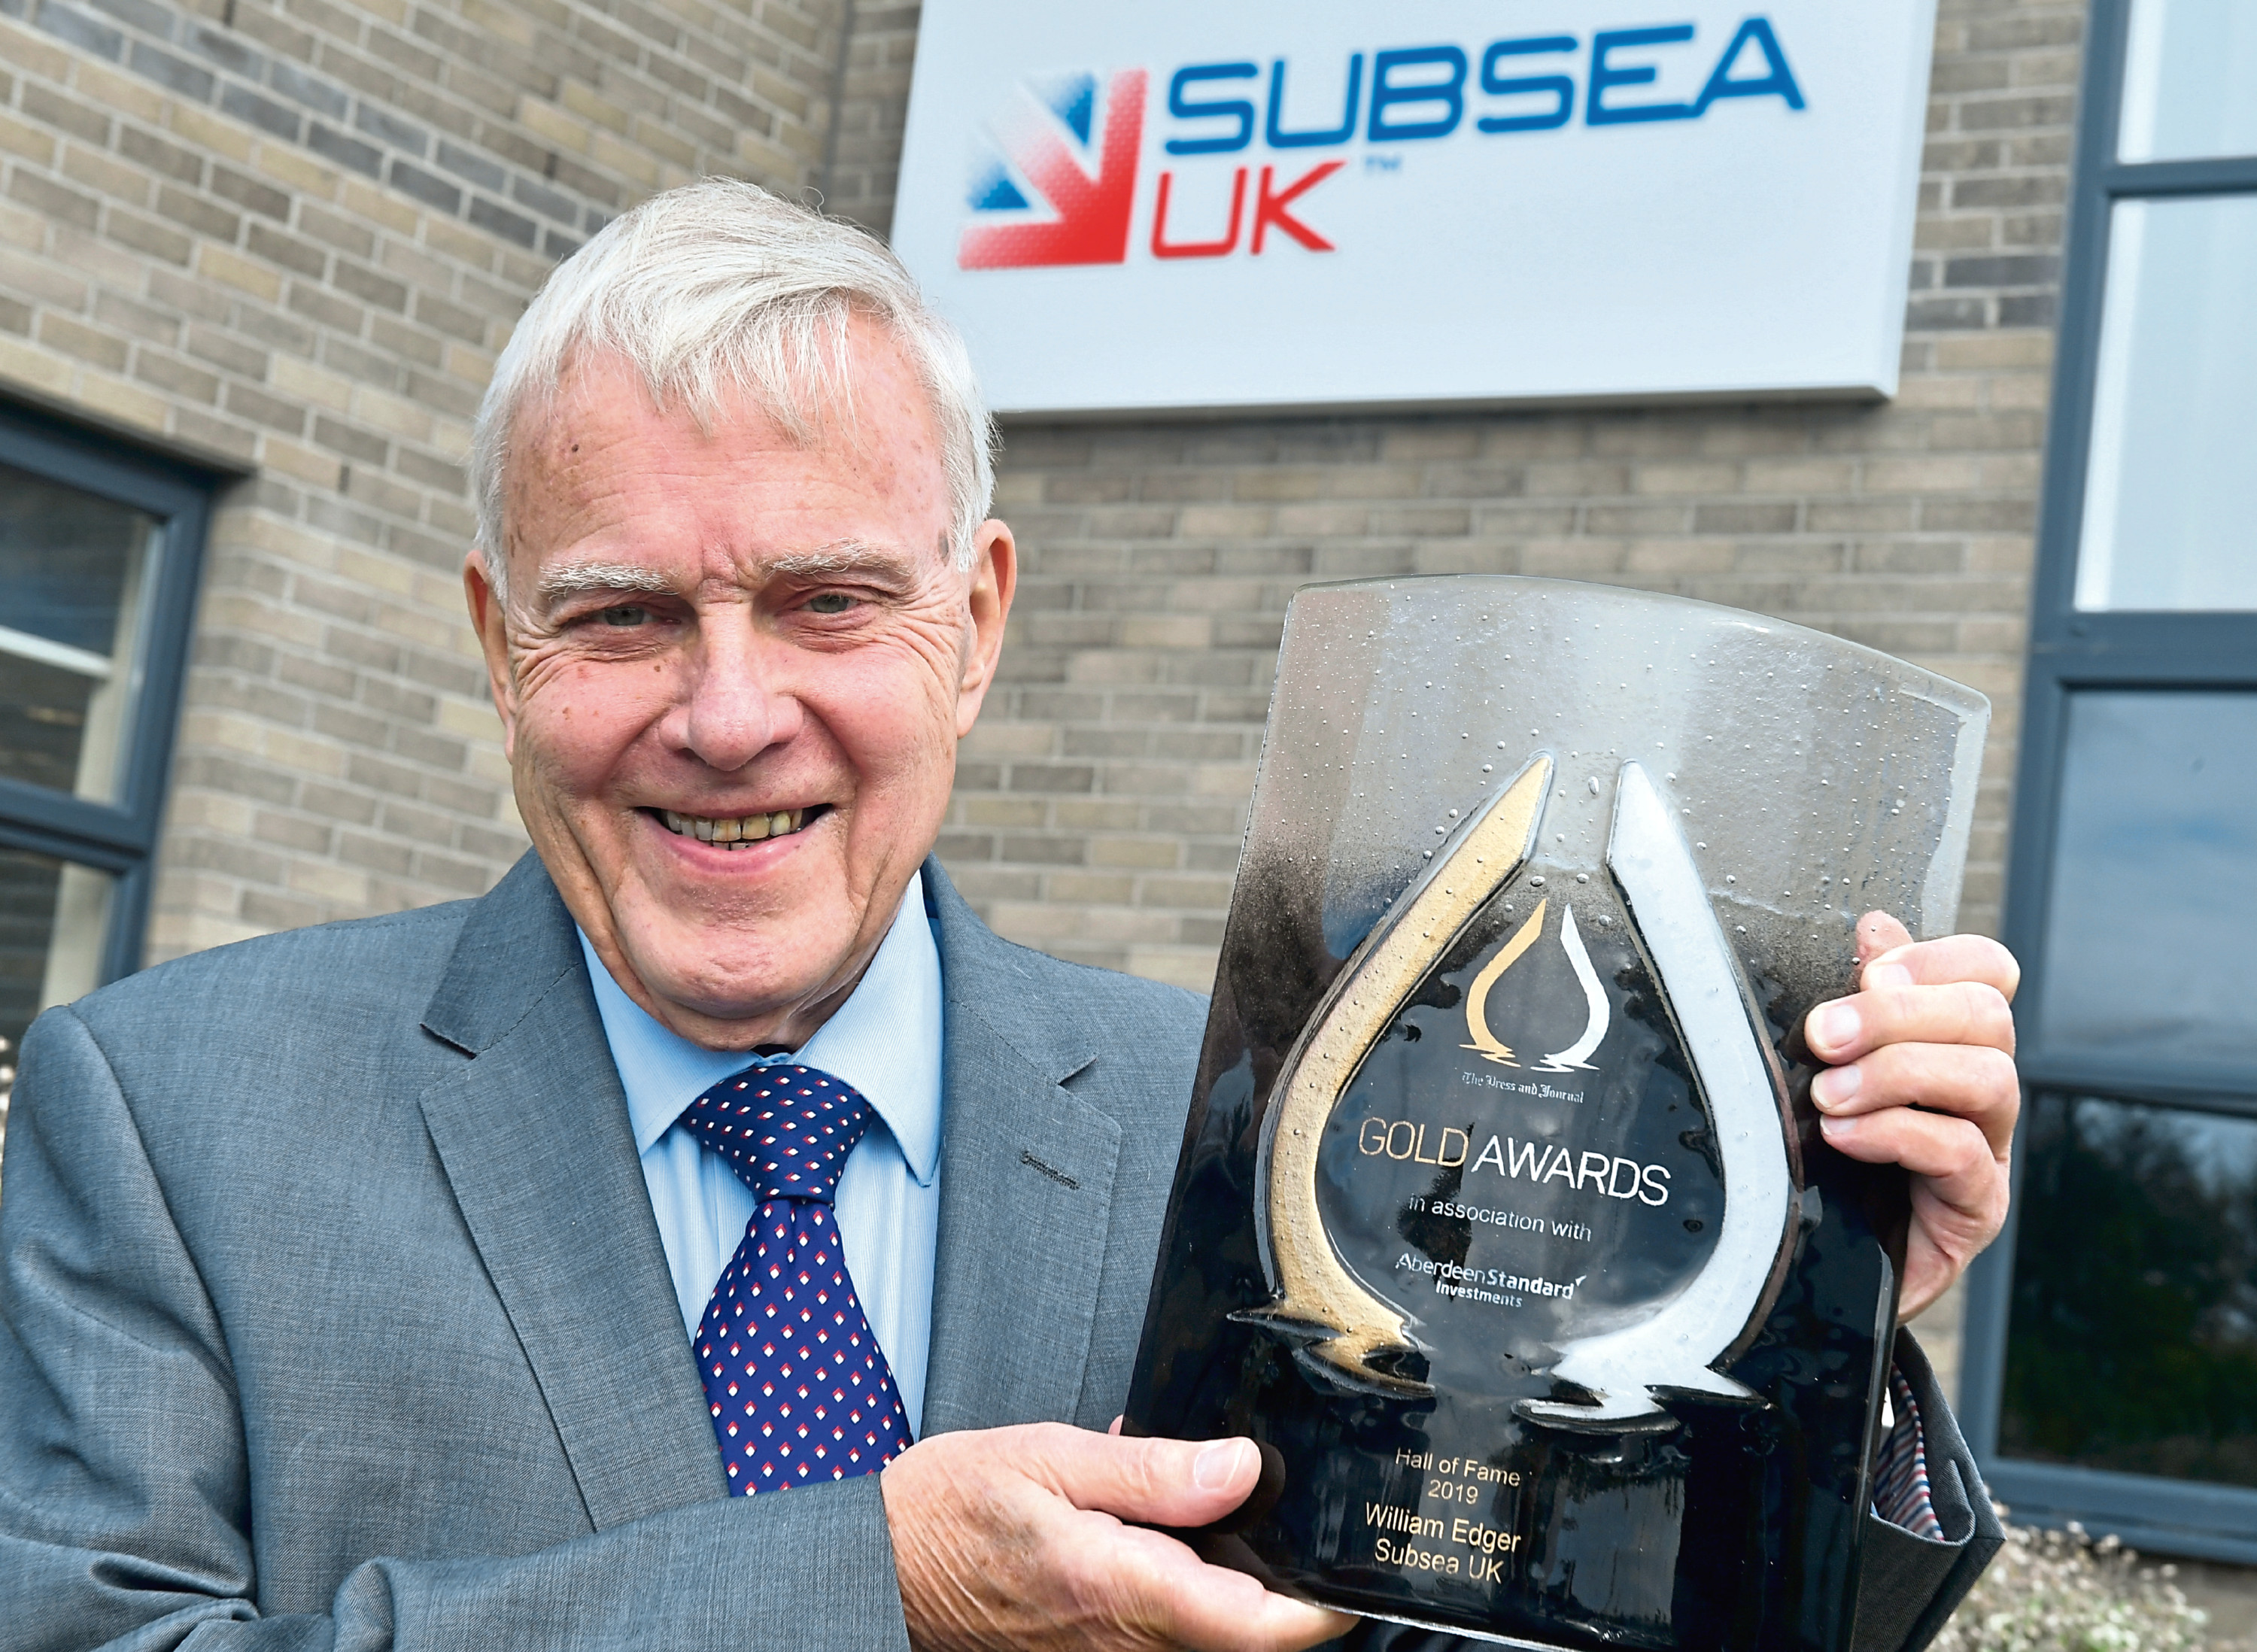 Hall of Fame Gold Awards winner, William Edgar, Chairman of Subsea Uk pictured with is award. CR0014218 Pic by Chris Sumner Taken 17/9/19